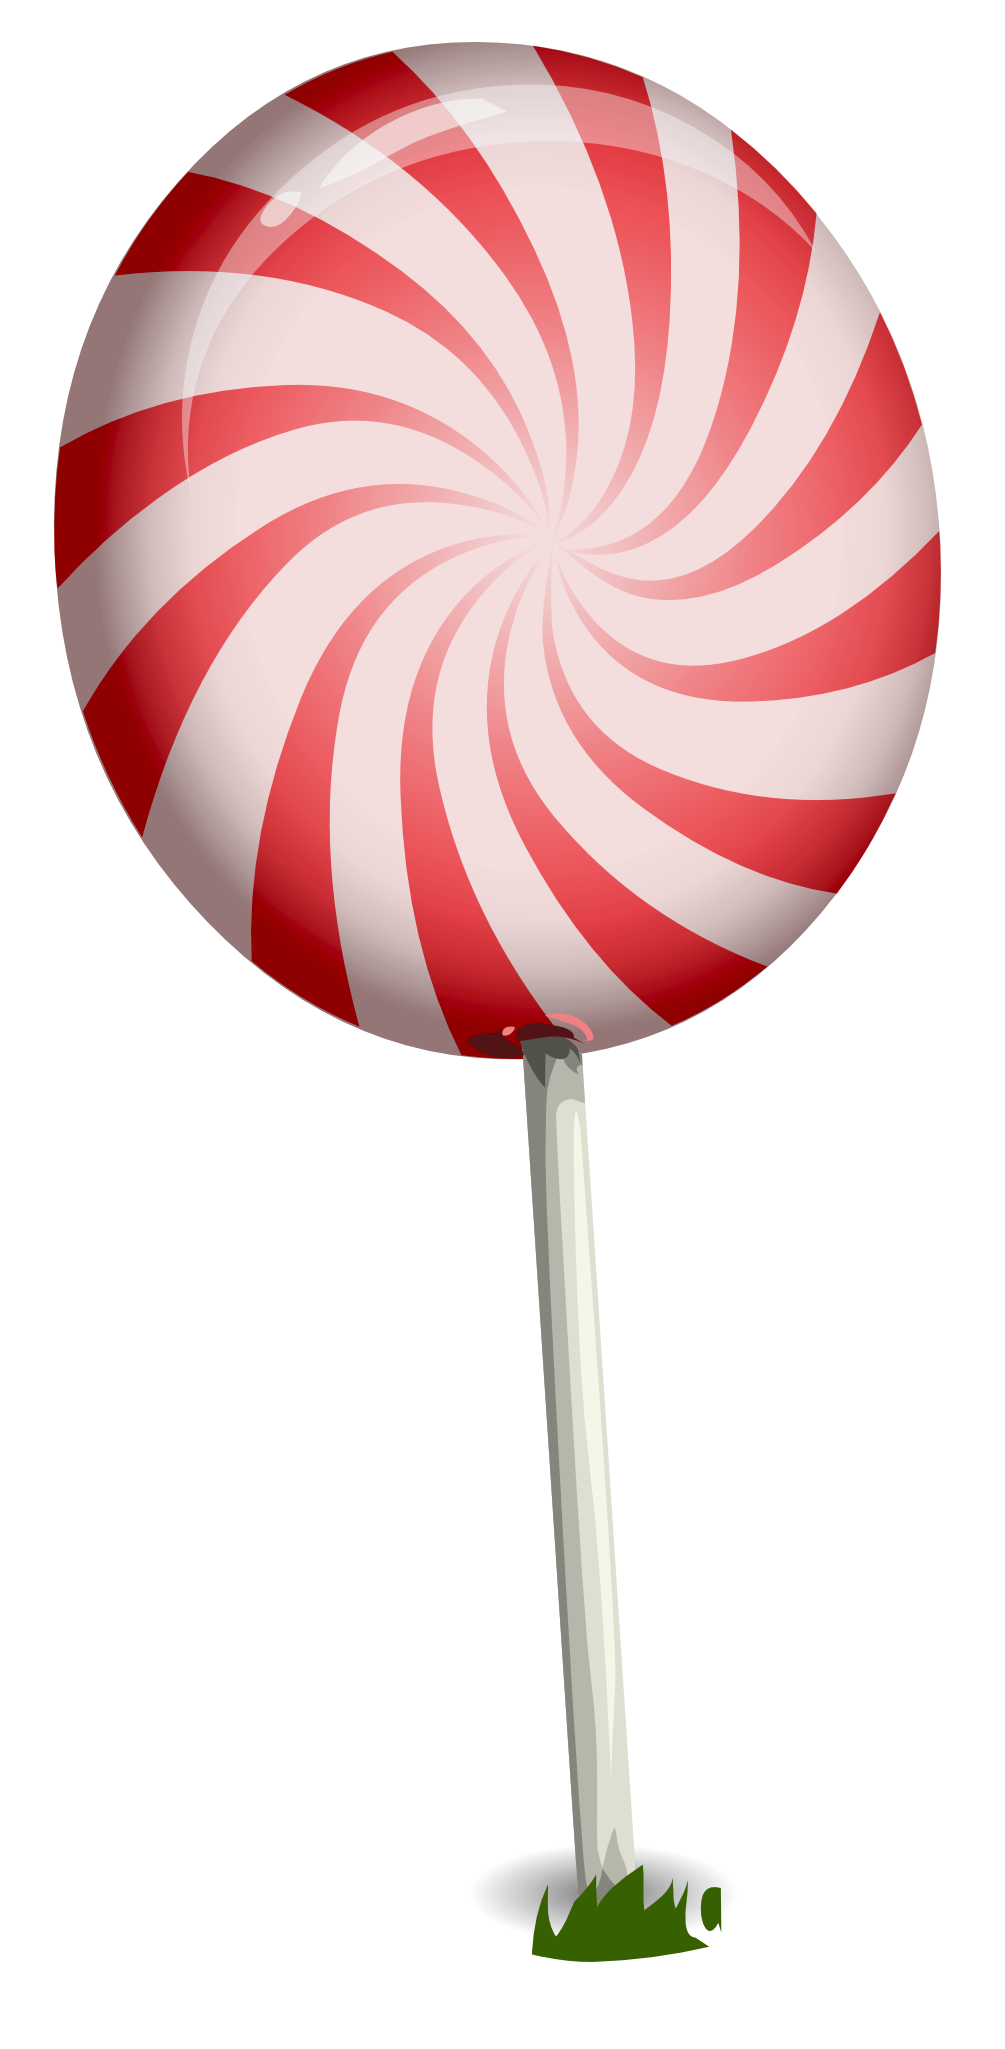 Transparent lollipop red yellow. Candy png image purepng